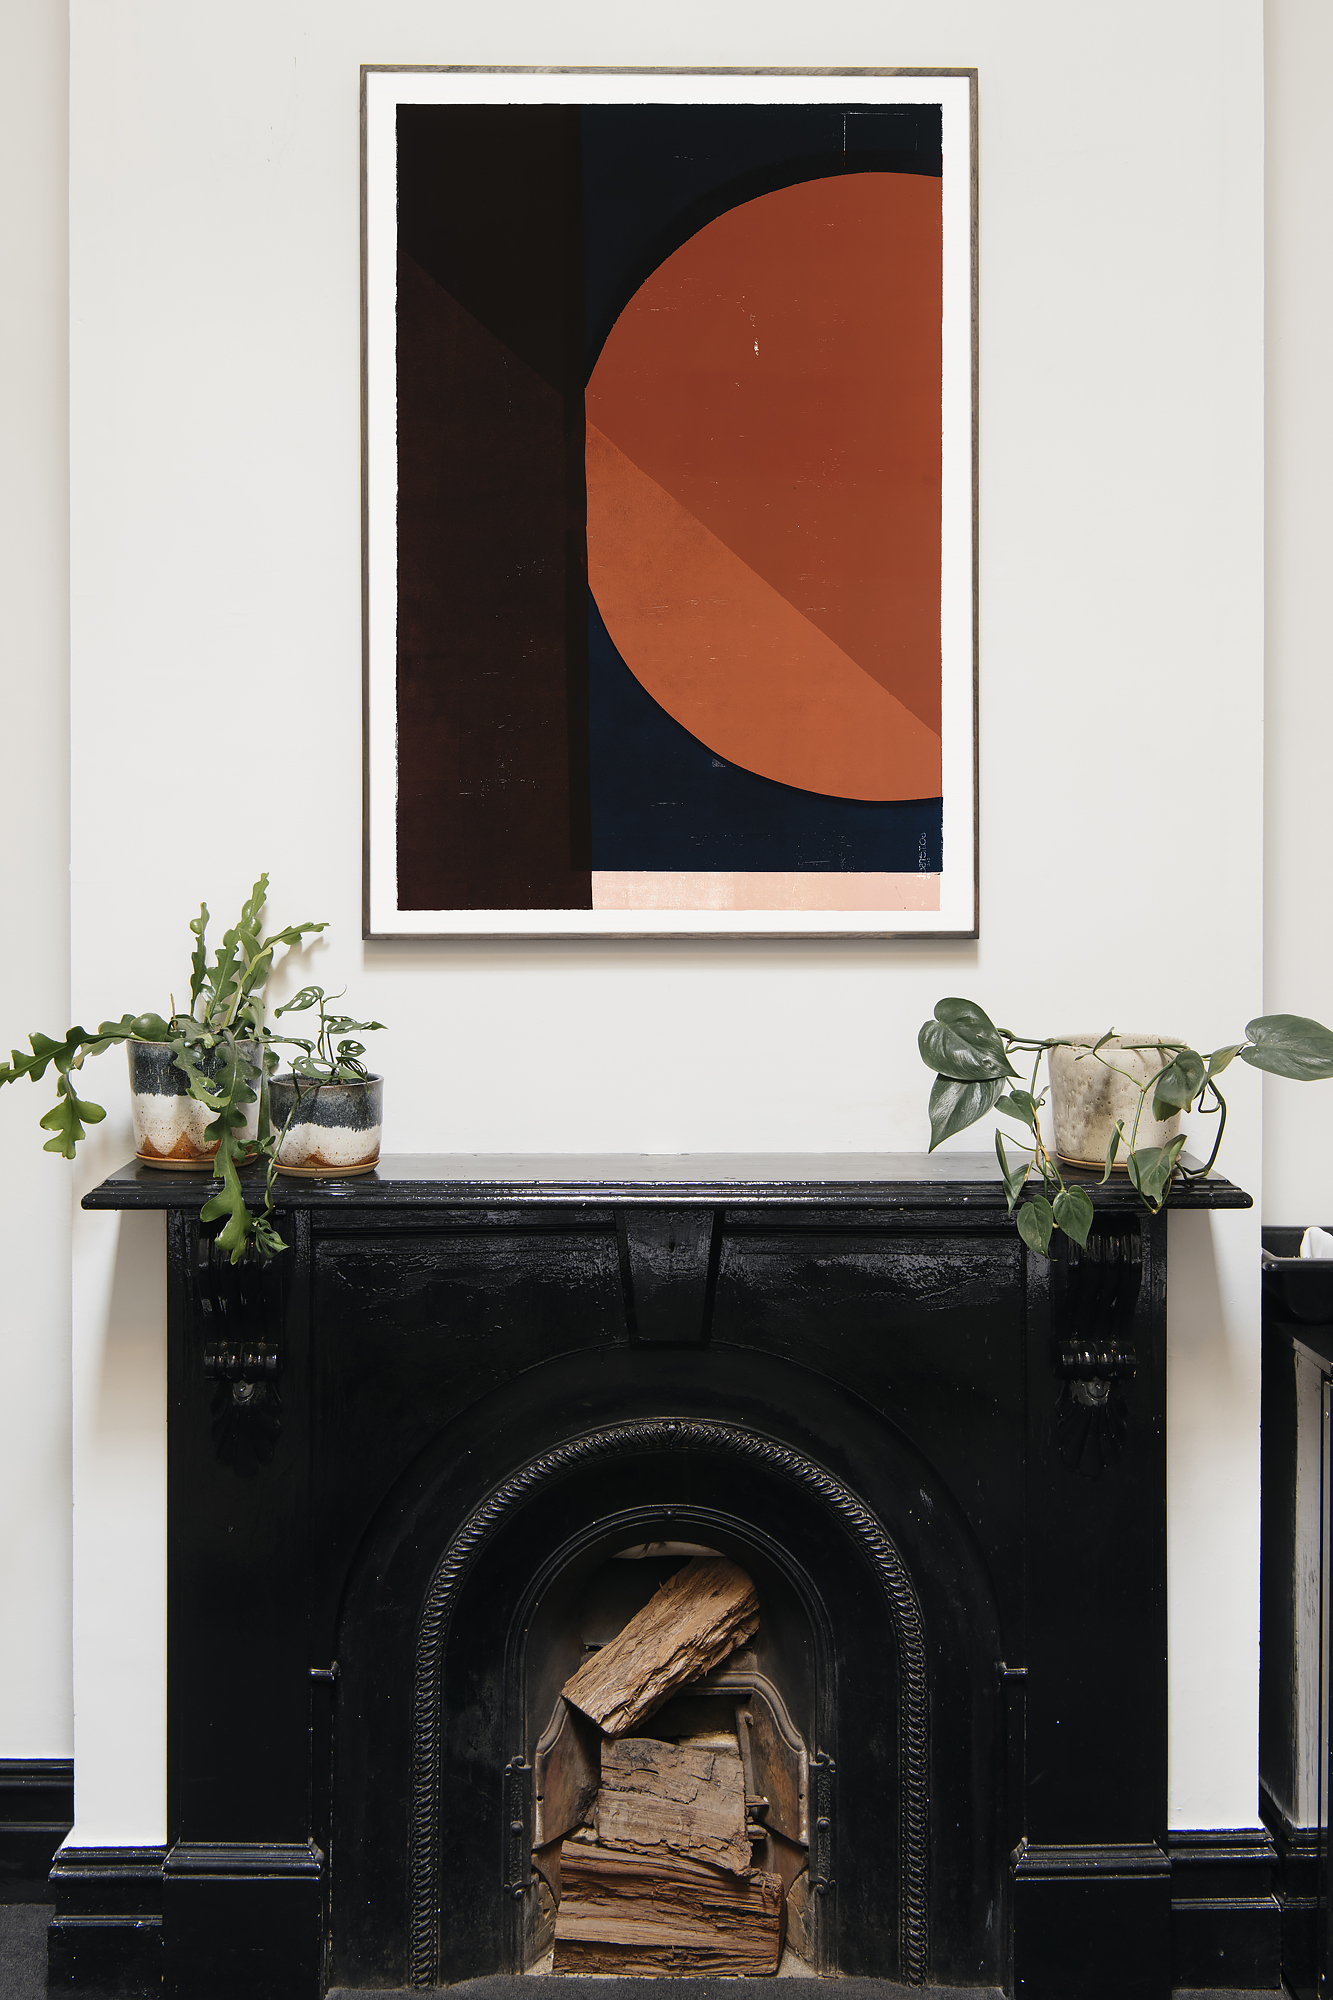 Broadsheet kitchen plant styling in collaboration with Samantha Eades design